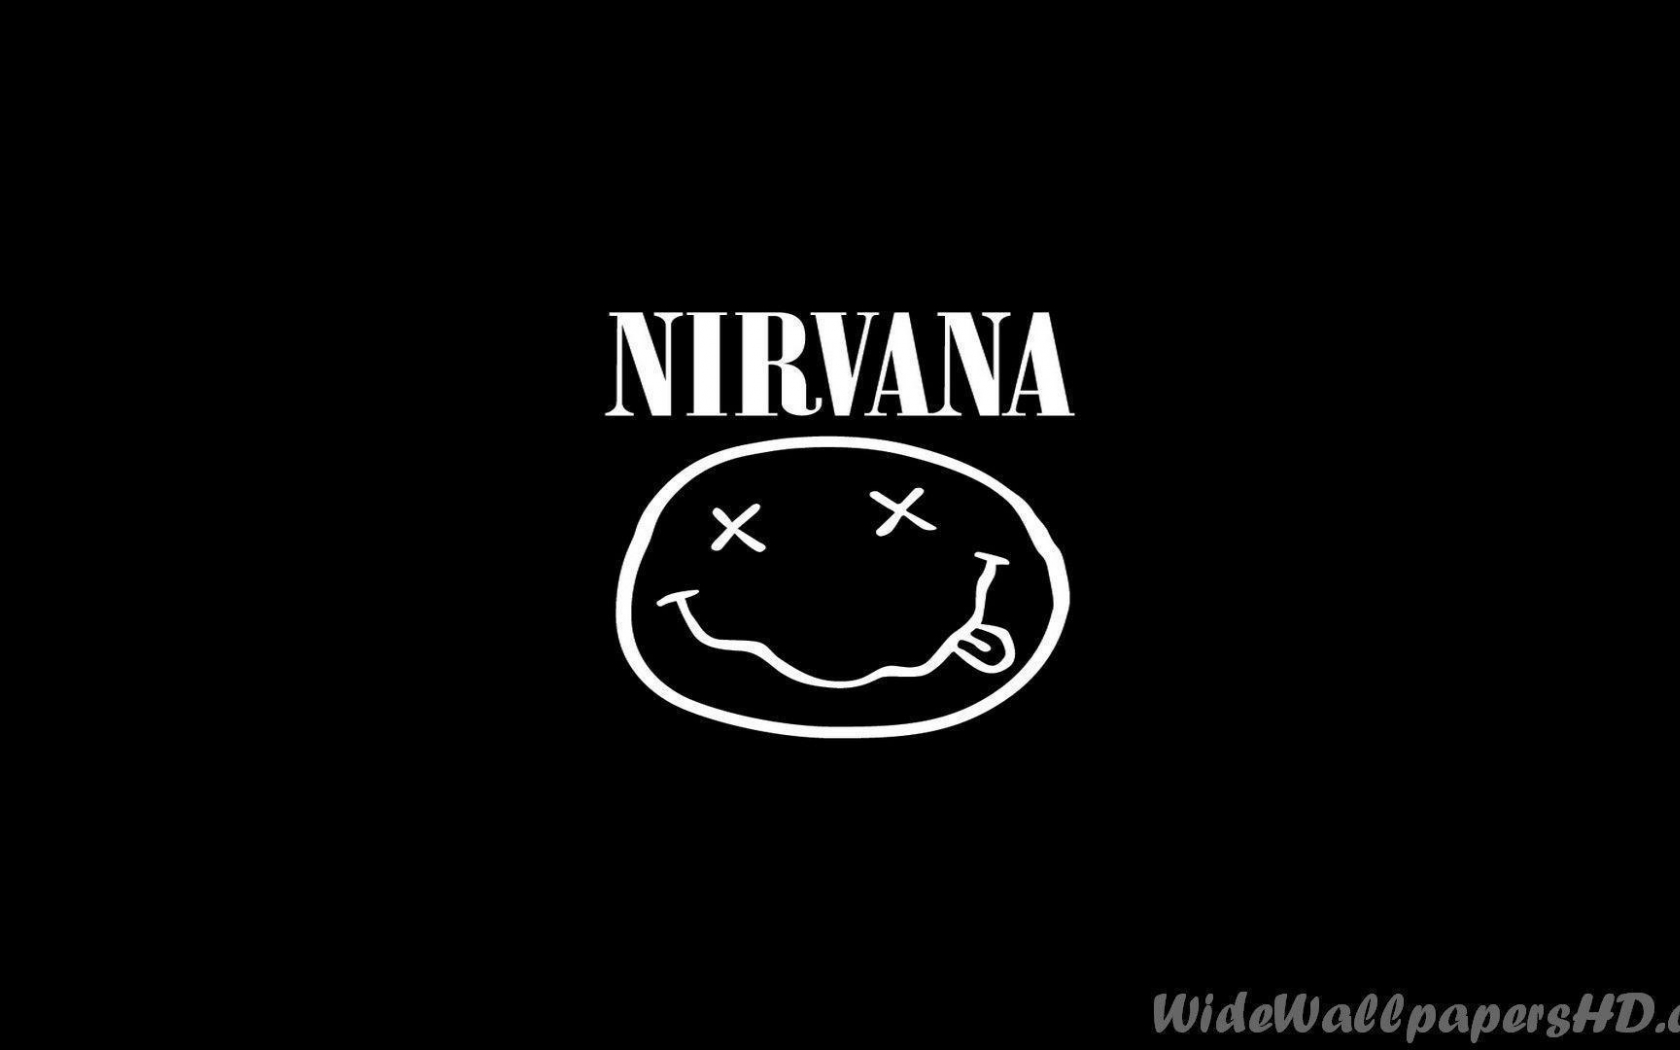 Free Download Nirvana Logo Wallpapers 1920x1080 For Your Desktop Mobile Tablet Explore 73 Nirvana Wallpaper Nirvana Logo Wallpaper Free Nirvana Wallpaper Nirvana Iphone Wallpaper